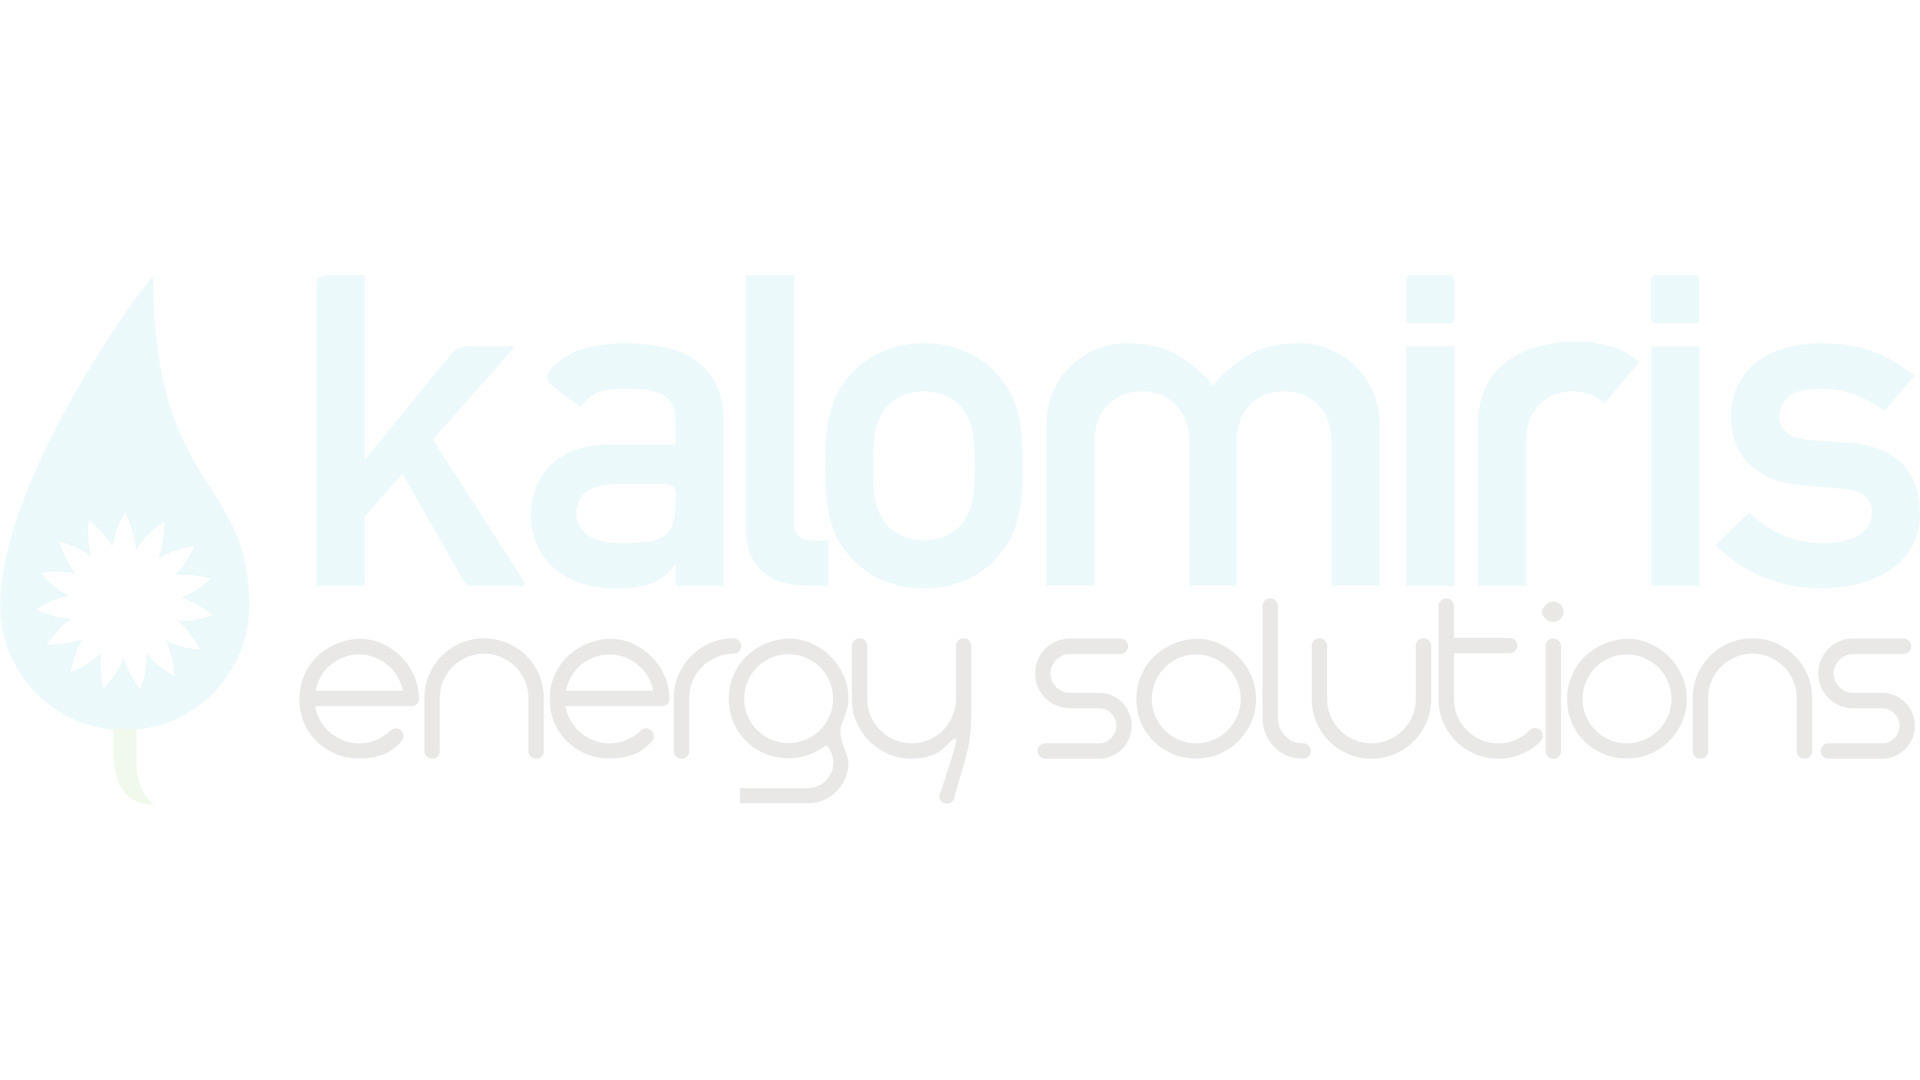 Ceiling Fan CASAFAN CLASSIC ROYAL 103 BN 40.5 (103cm)